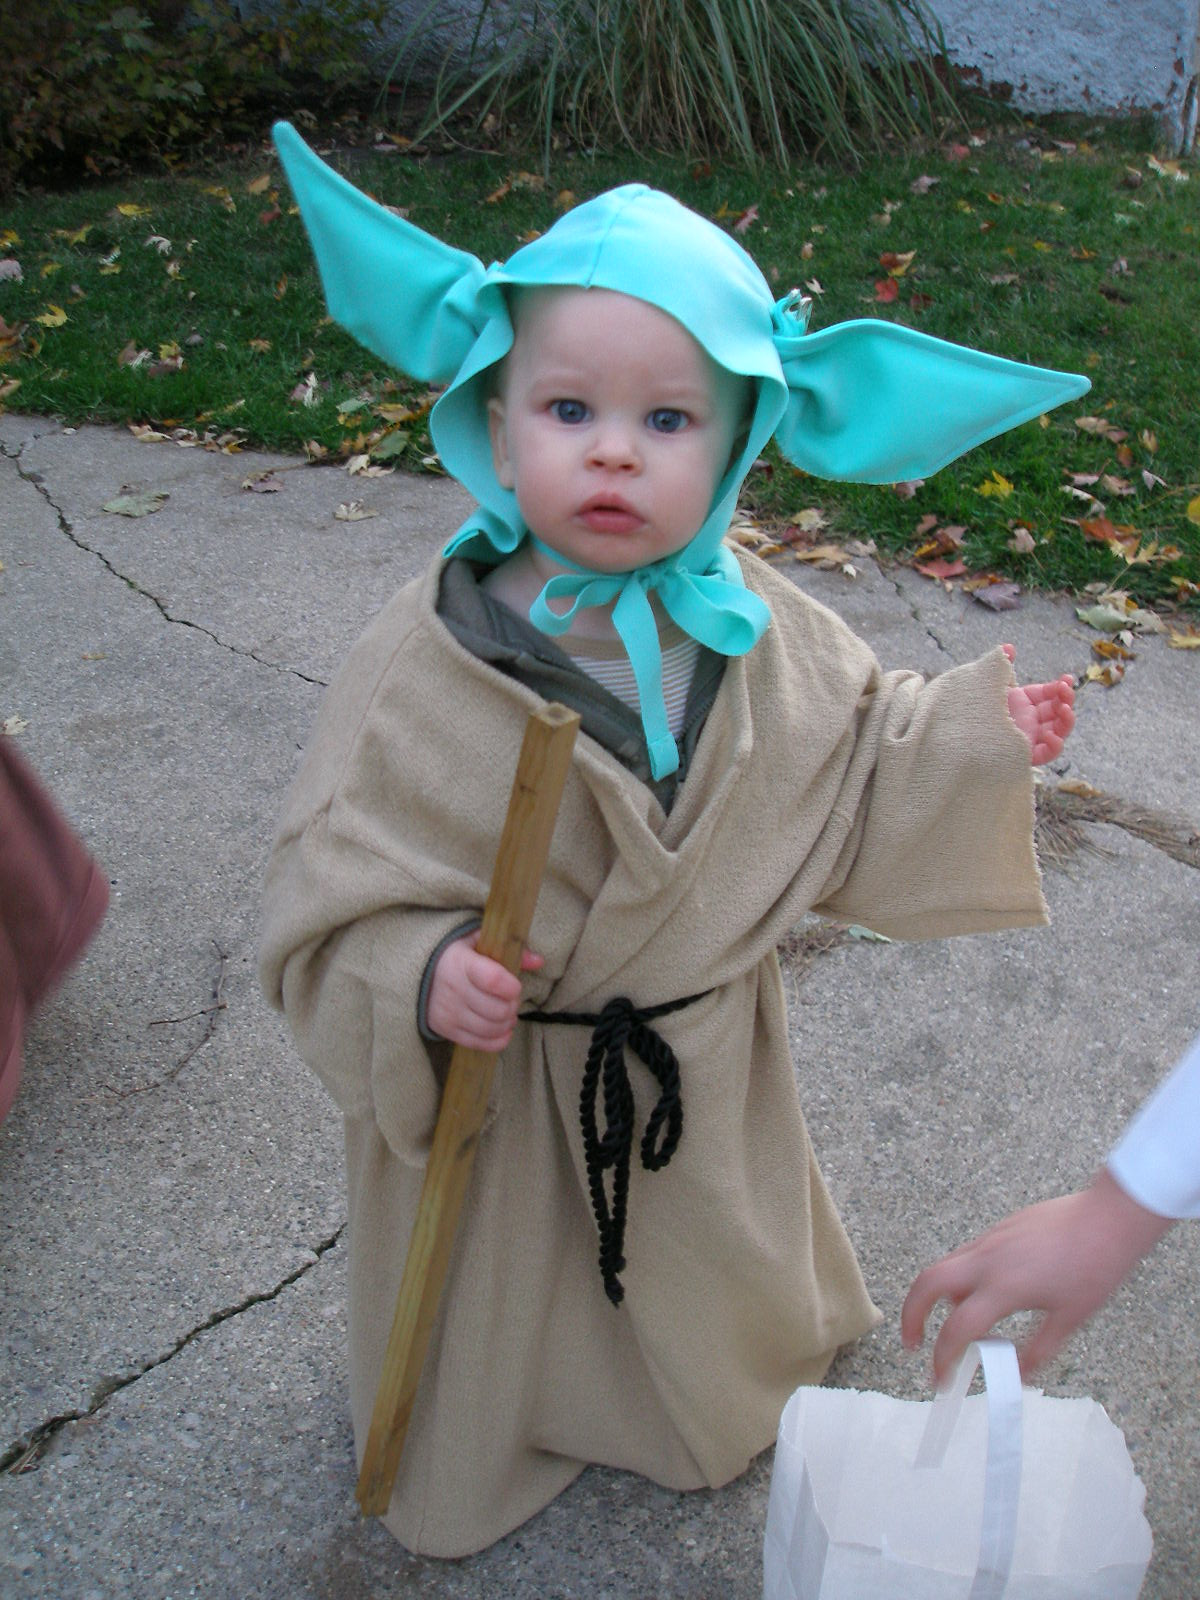 Best ideas about DIY Infant Costume . Save or Pin Super Savings DIY Star Wars Costumes Baby Yoda Princess Now.